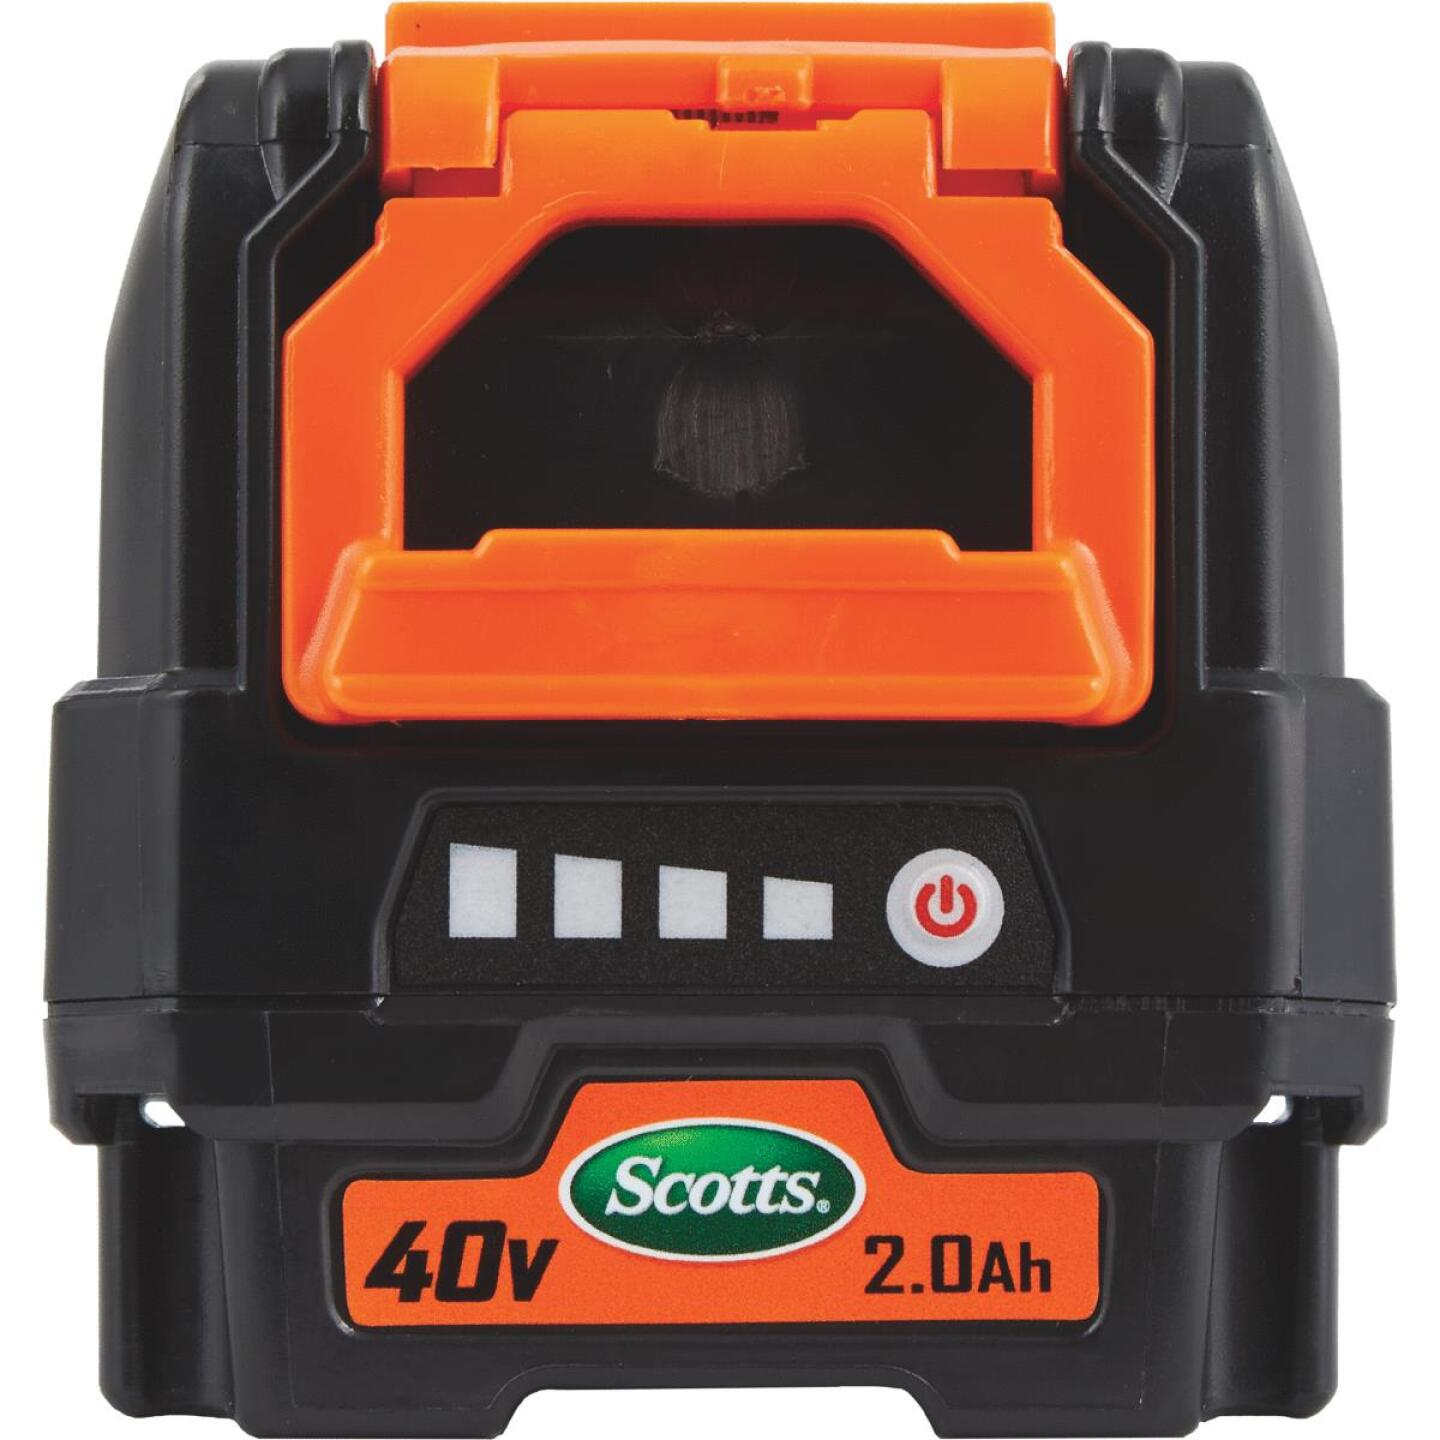 Scotts 40V 2.0Ah Replacement Tool Battery Image 3